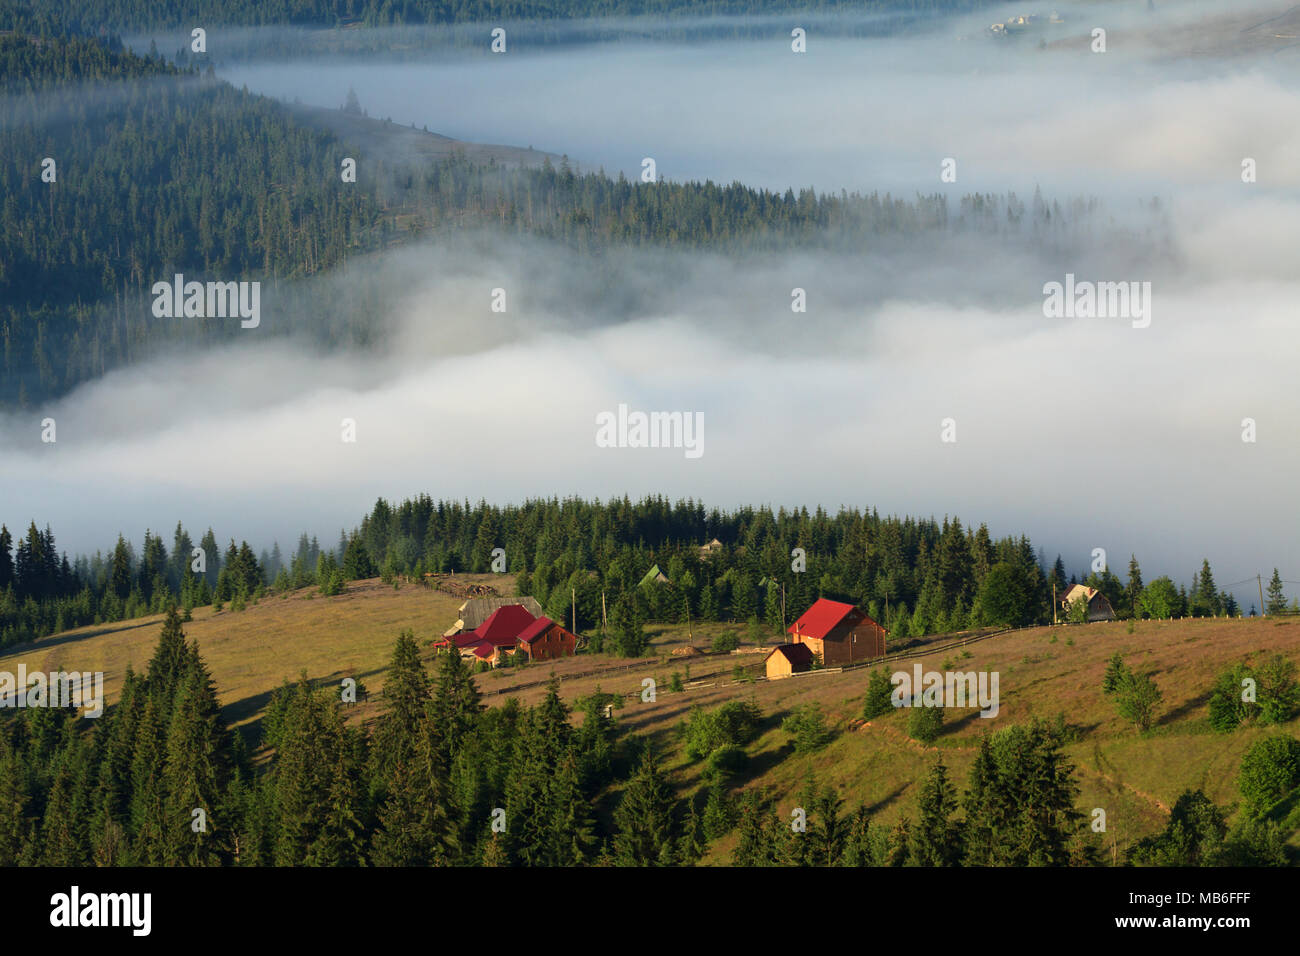 A peaceful village in a valley covered with mists. Apuseni Mountains, Carpathian Region, Romania. - Stock Image